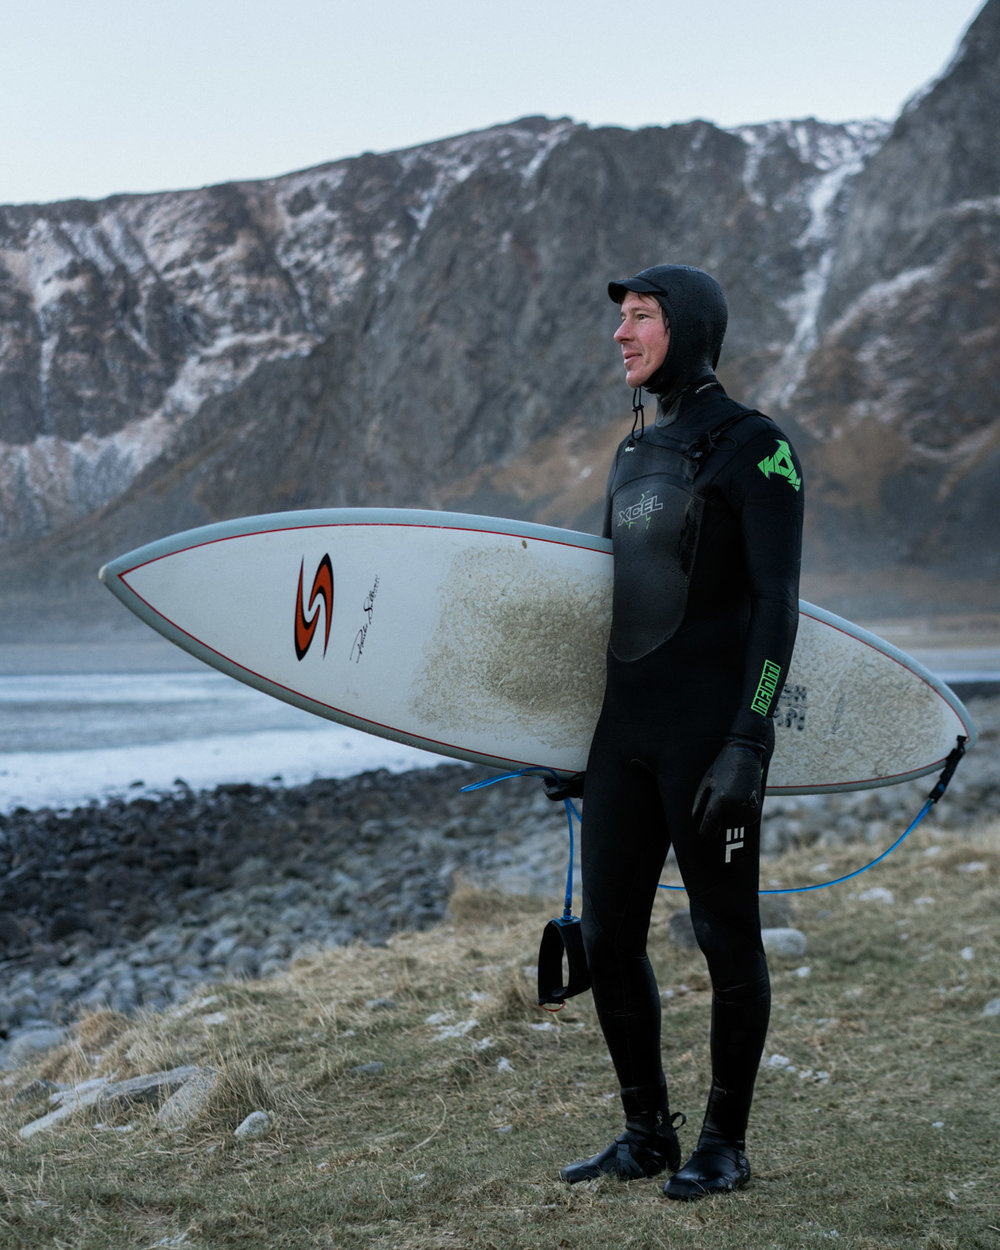 niklas roiha came all the way from Helsinki for a few days on the Lofoten to catch its best waves